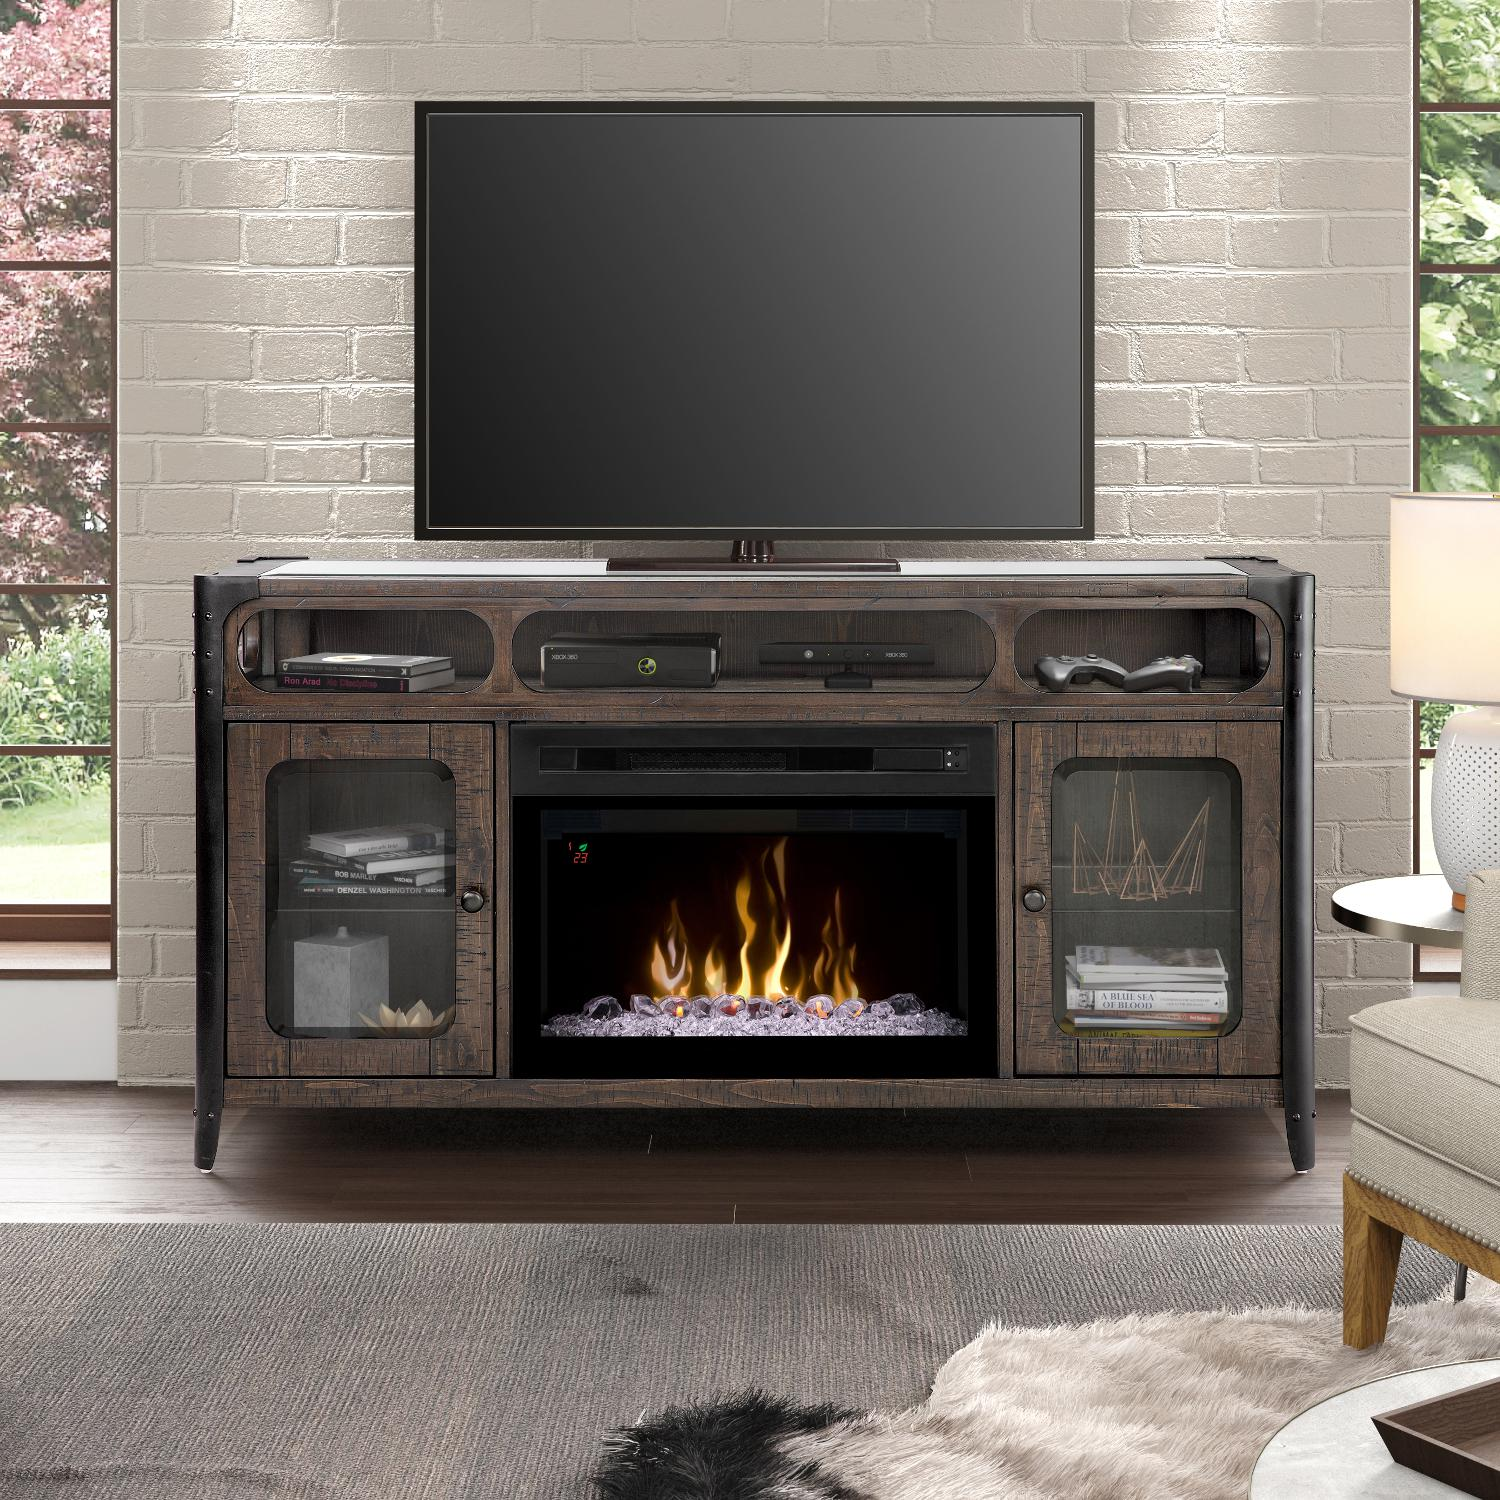 Dimplex Multi-Fire XD Paige 60-Inch Electric Fireplace Me...